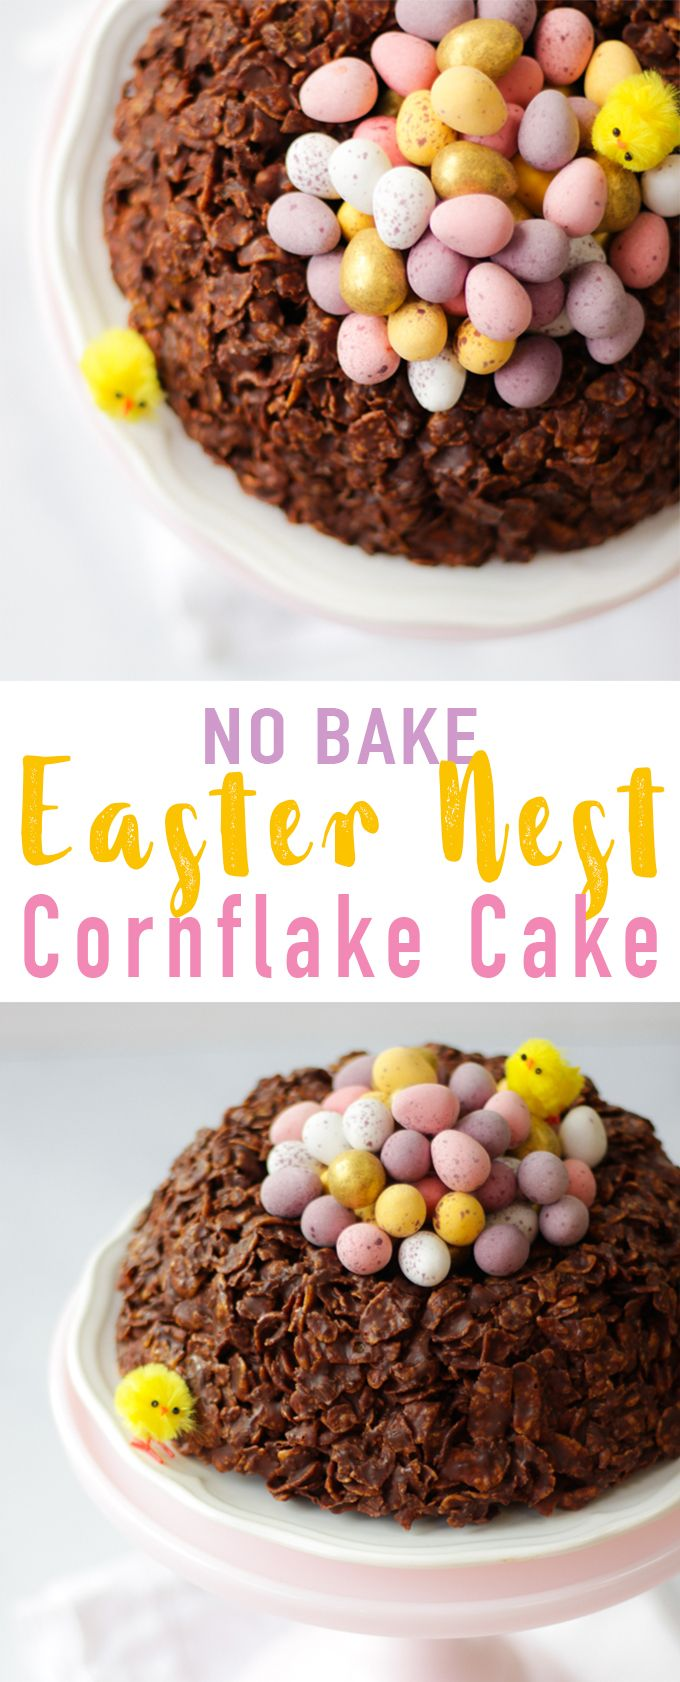 This easy GIANTEaster Nest Cornflake Cake Recipe is so much fun to make. Simple and really tasty, a fab no bake Easter make full of candy treats. It uses just 5 store cupboard ingredients - butter, chocolate, golden syrup and cornflakes.. Topped with Mini Eggs of course! via @tamingtwins #minieggs #easter